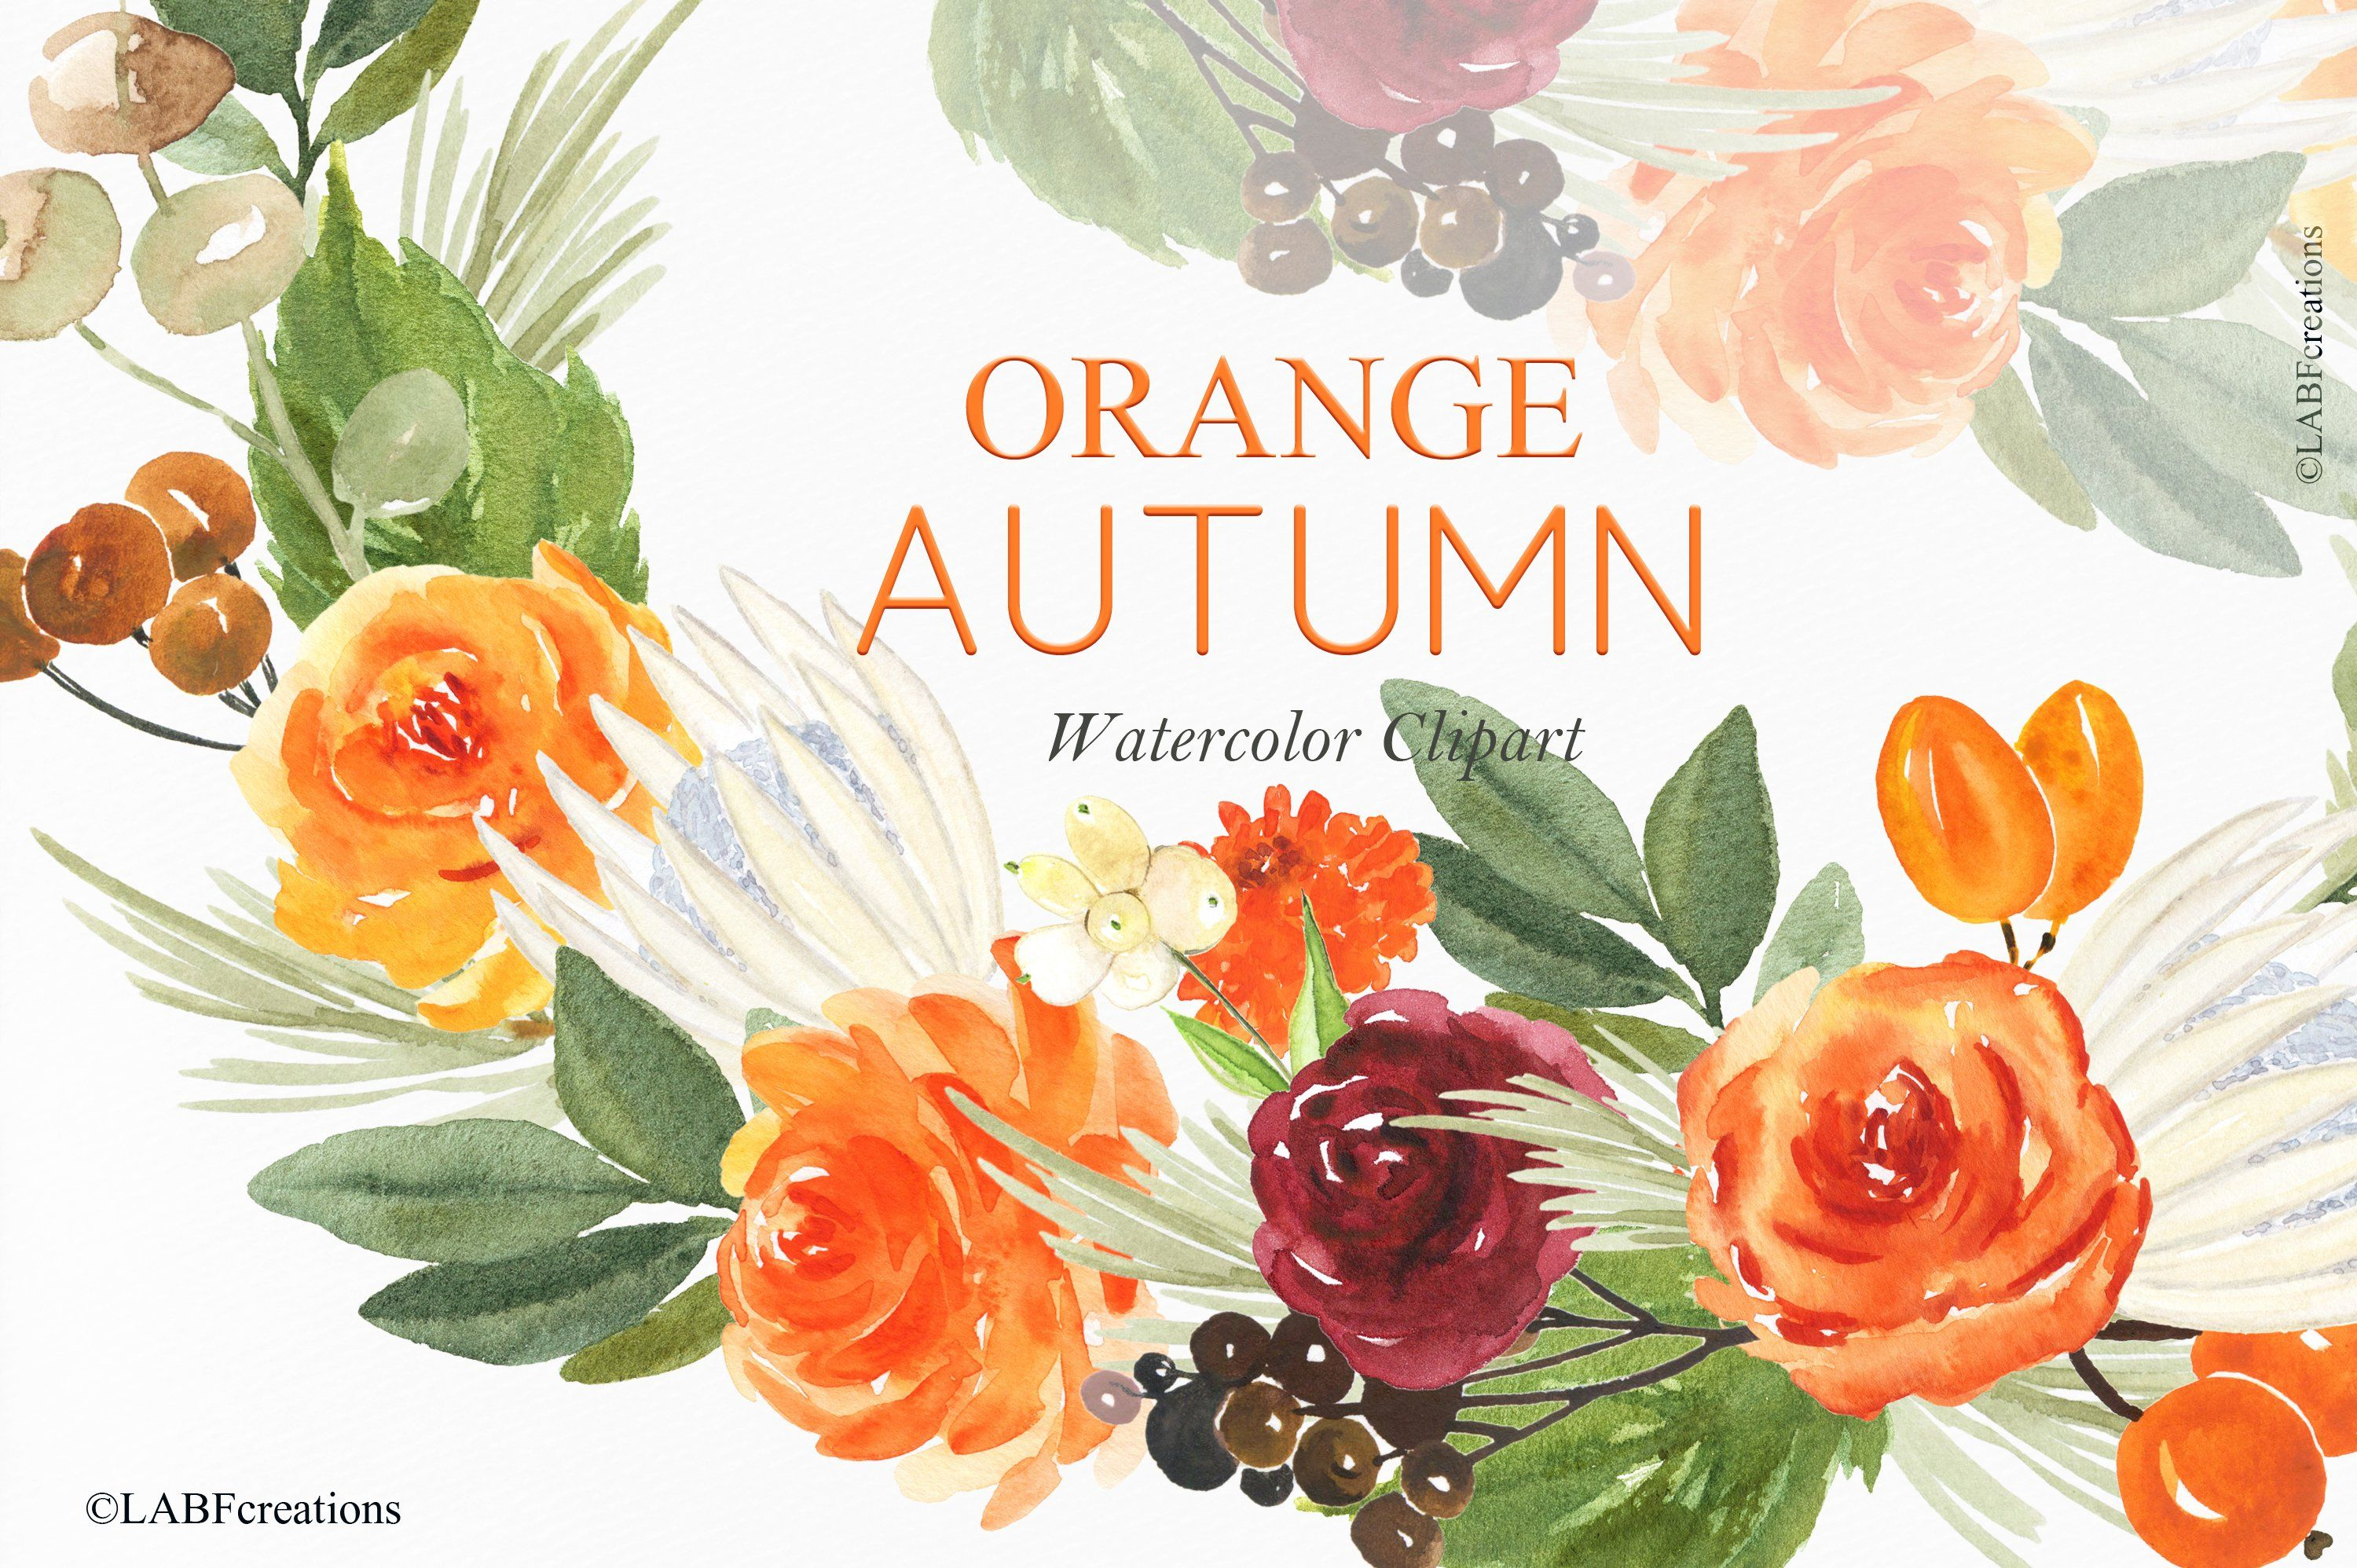 Orange Autumn Watercolor Flowers With Images Watercolor